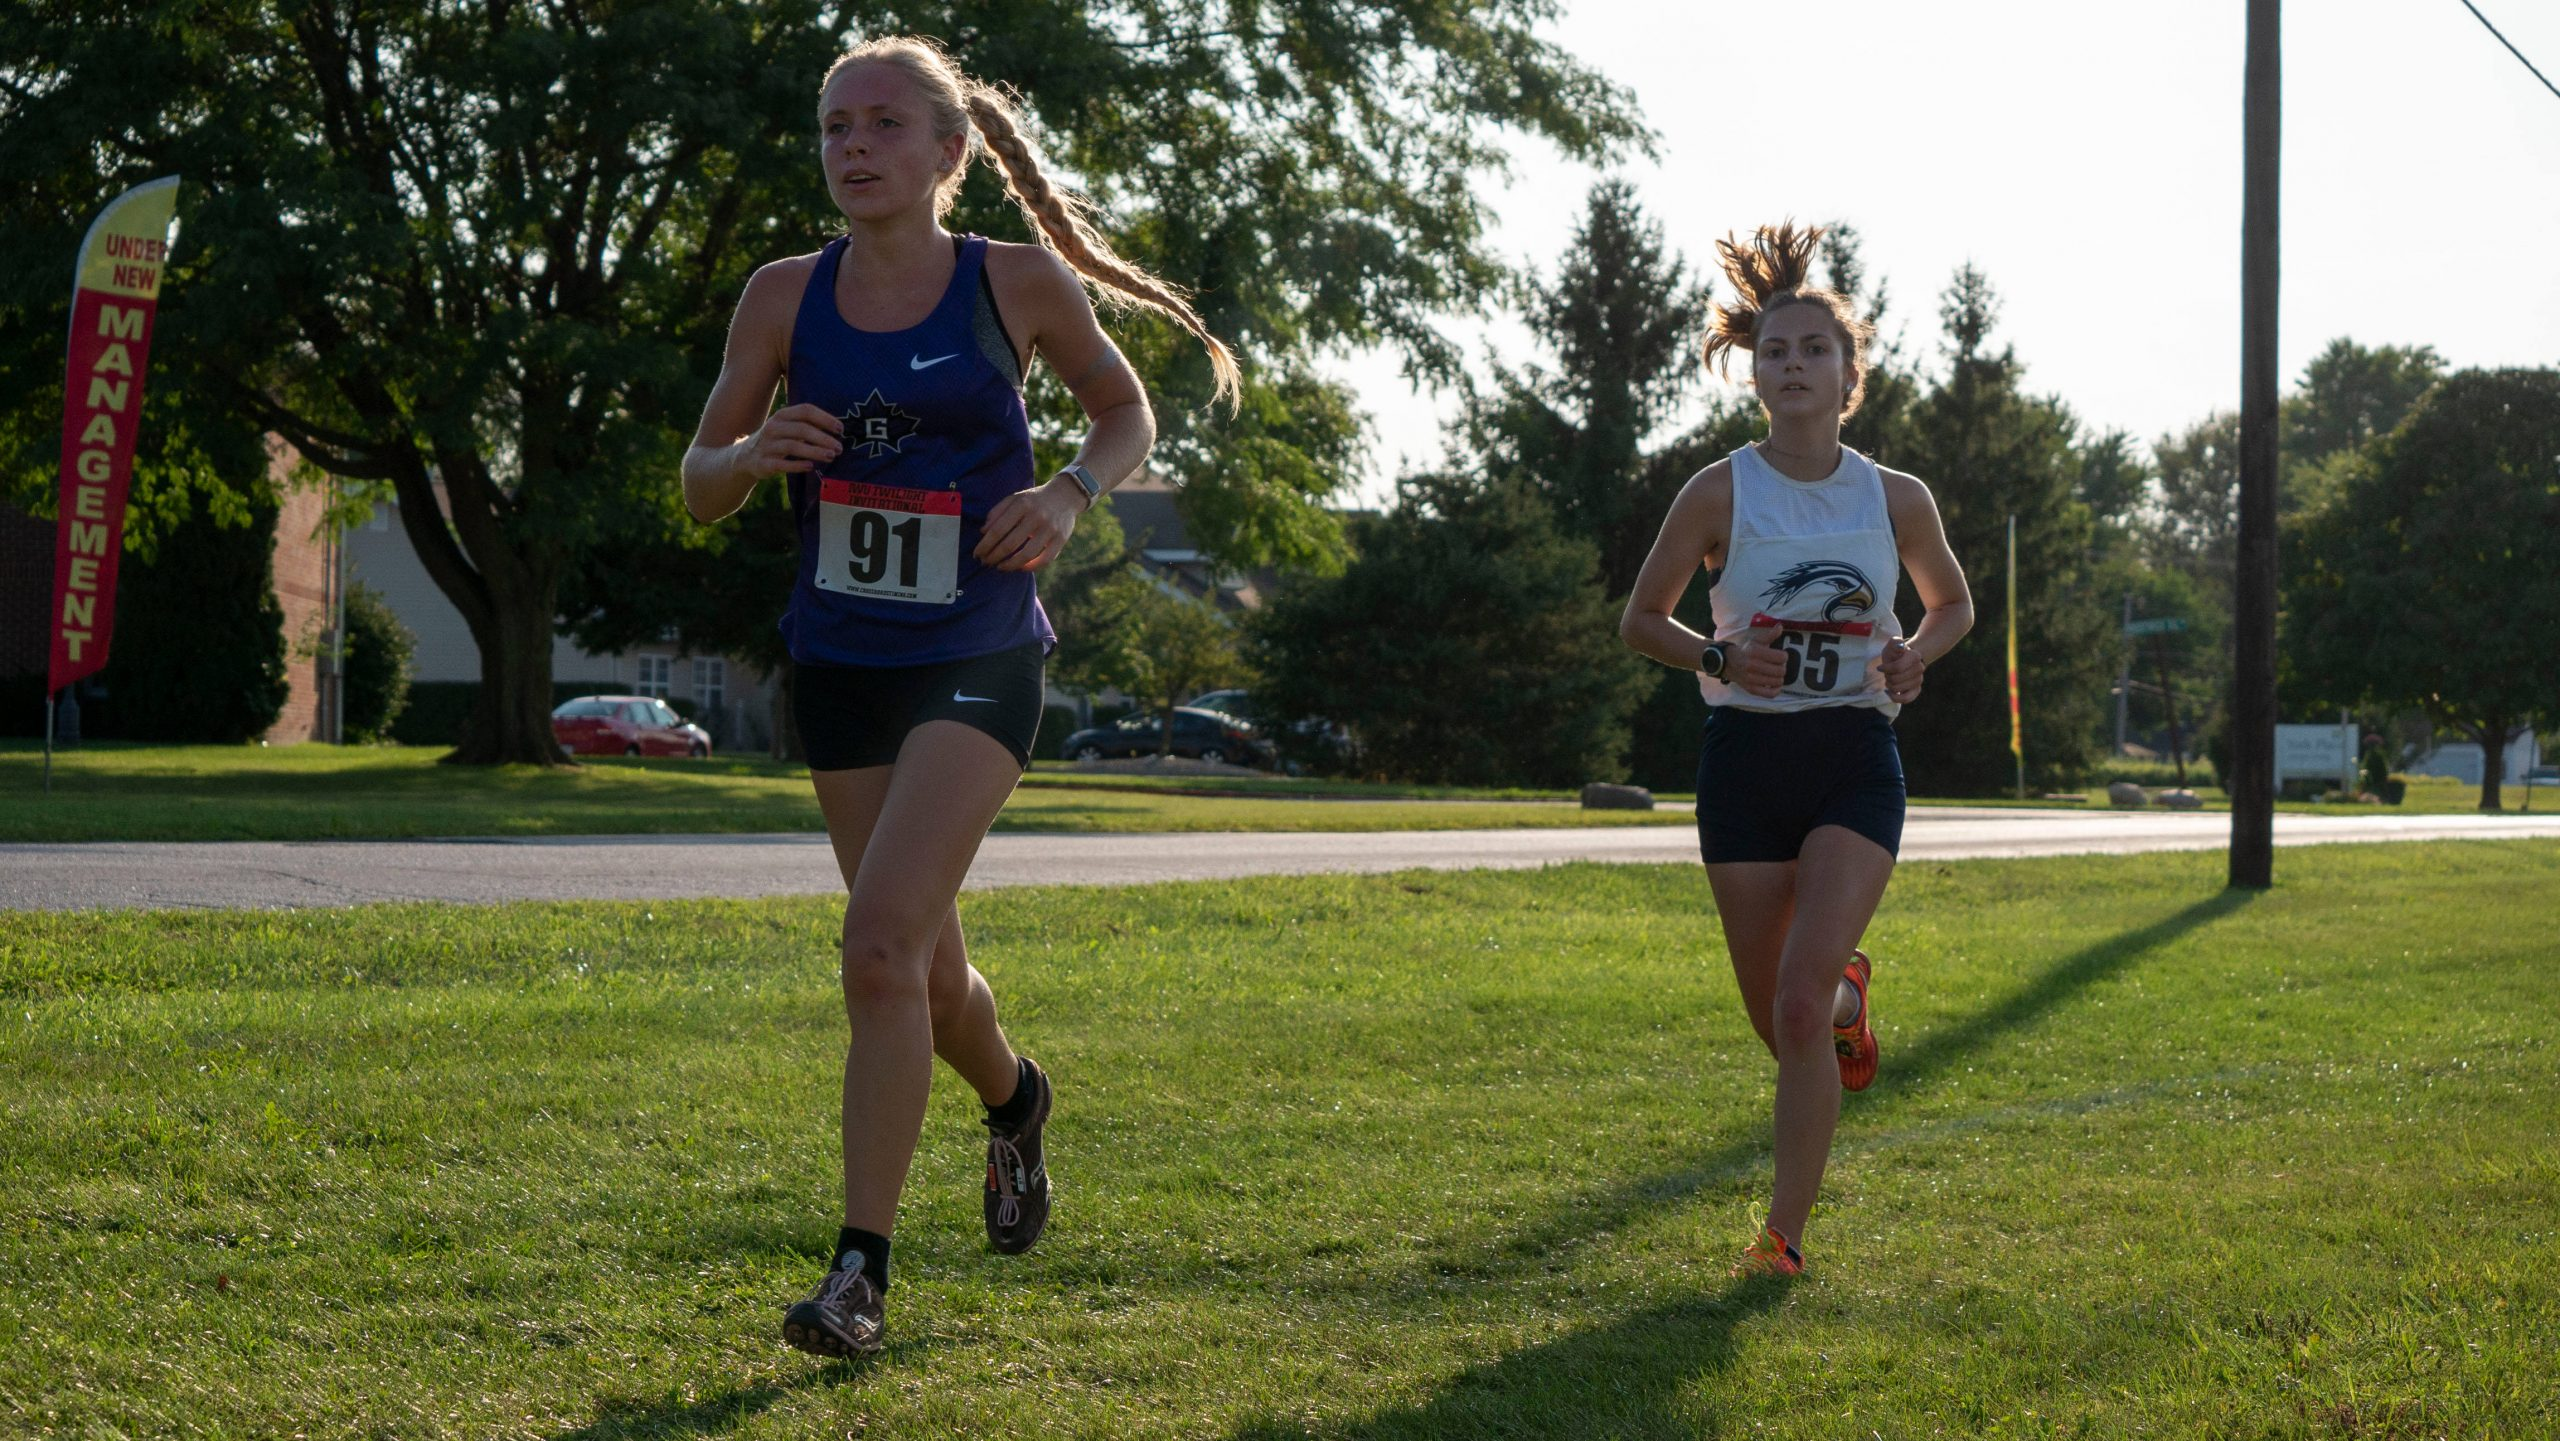 Annika Fisher speeding down cross country course